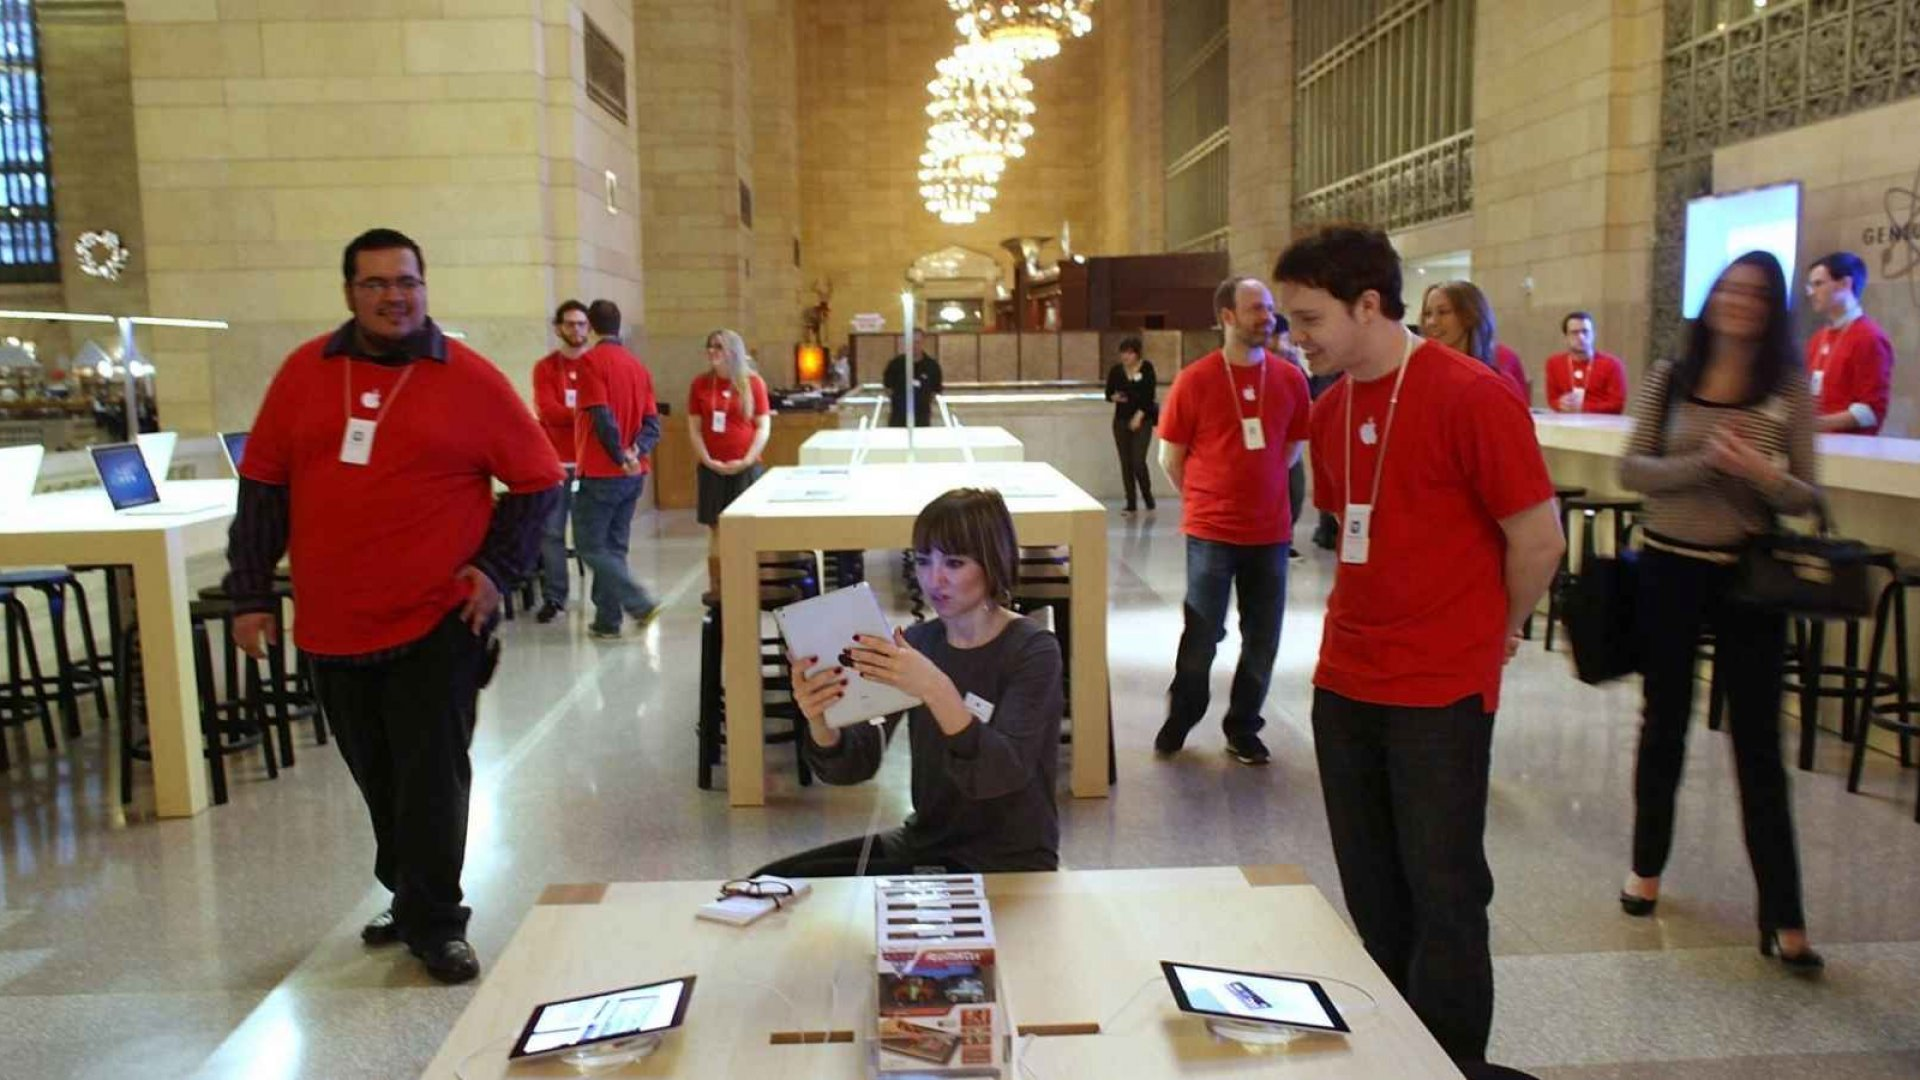 Tech Giant Apple Honored for Helping Preserve Historic NYC Structures